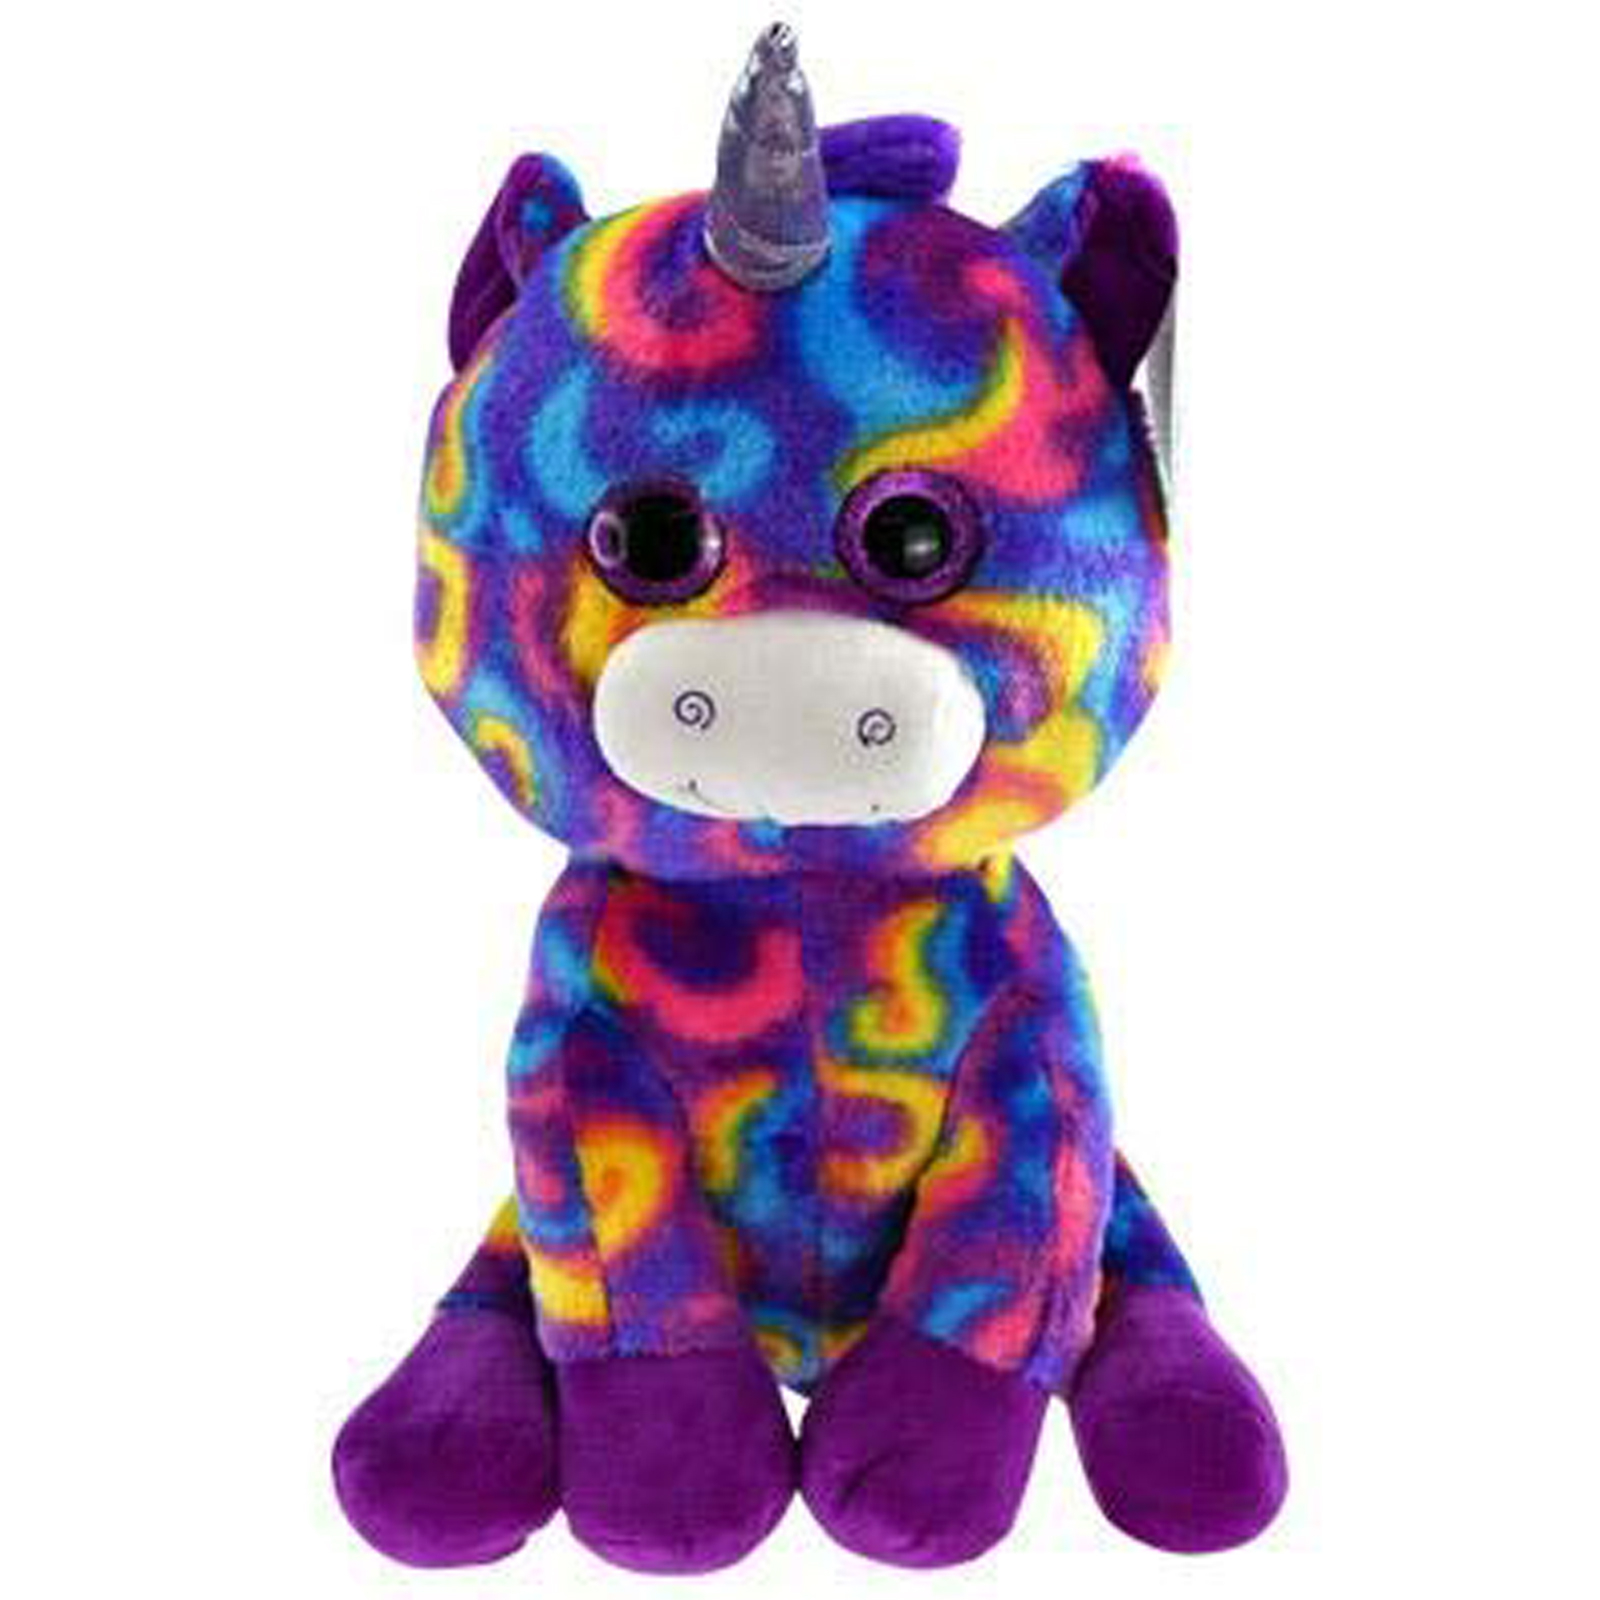 TychoTyke Bright Purple Soft Plush Stuffed Unicorn Kids Comfort and Play Toy